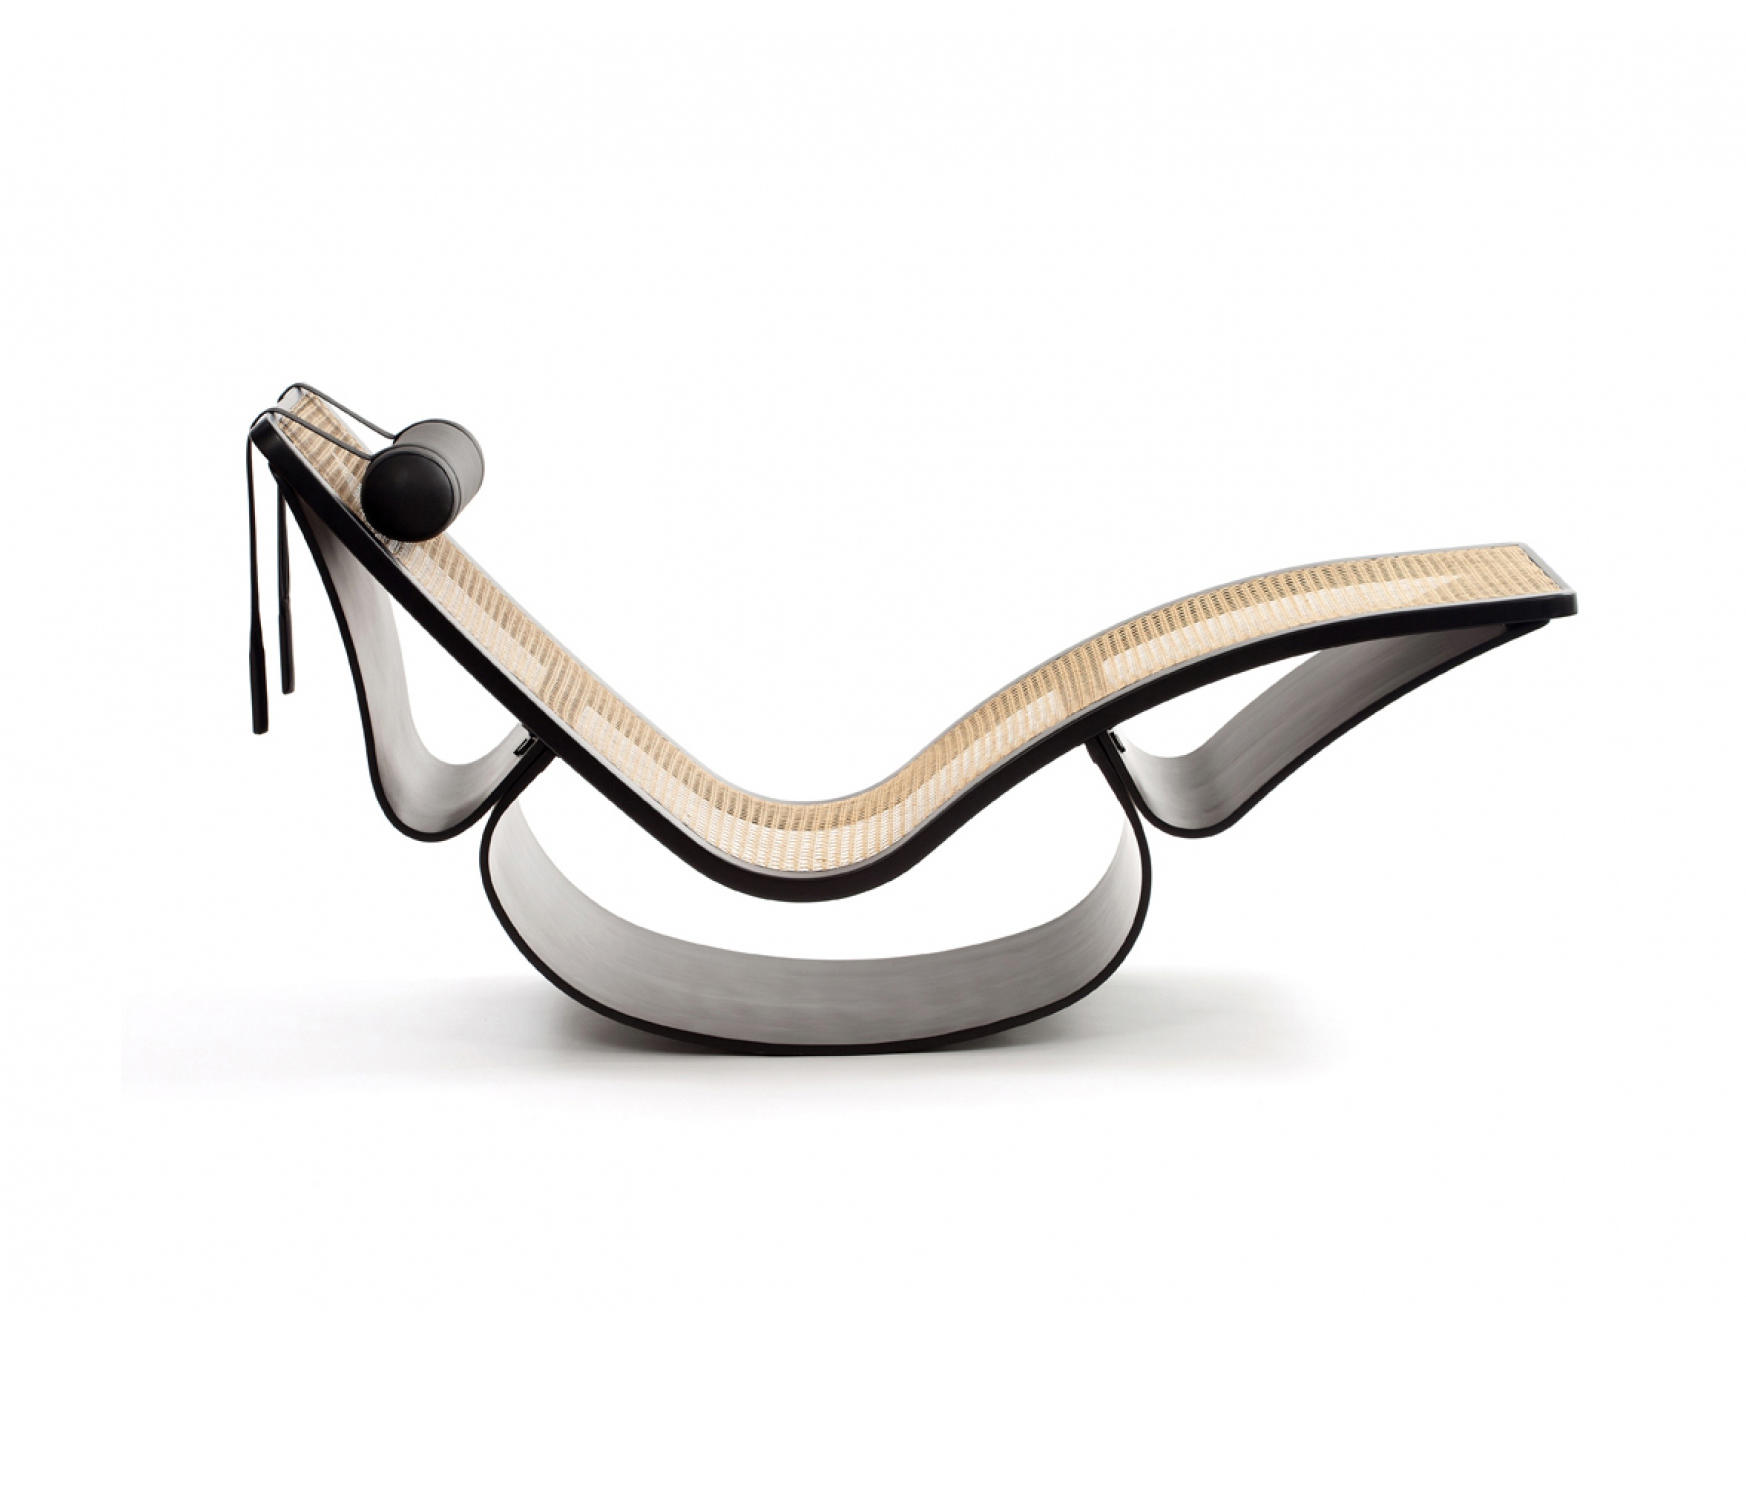 Chaise Spoon Rio Rocking Chaise Armchairs From Espasso Architonic